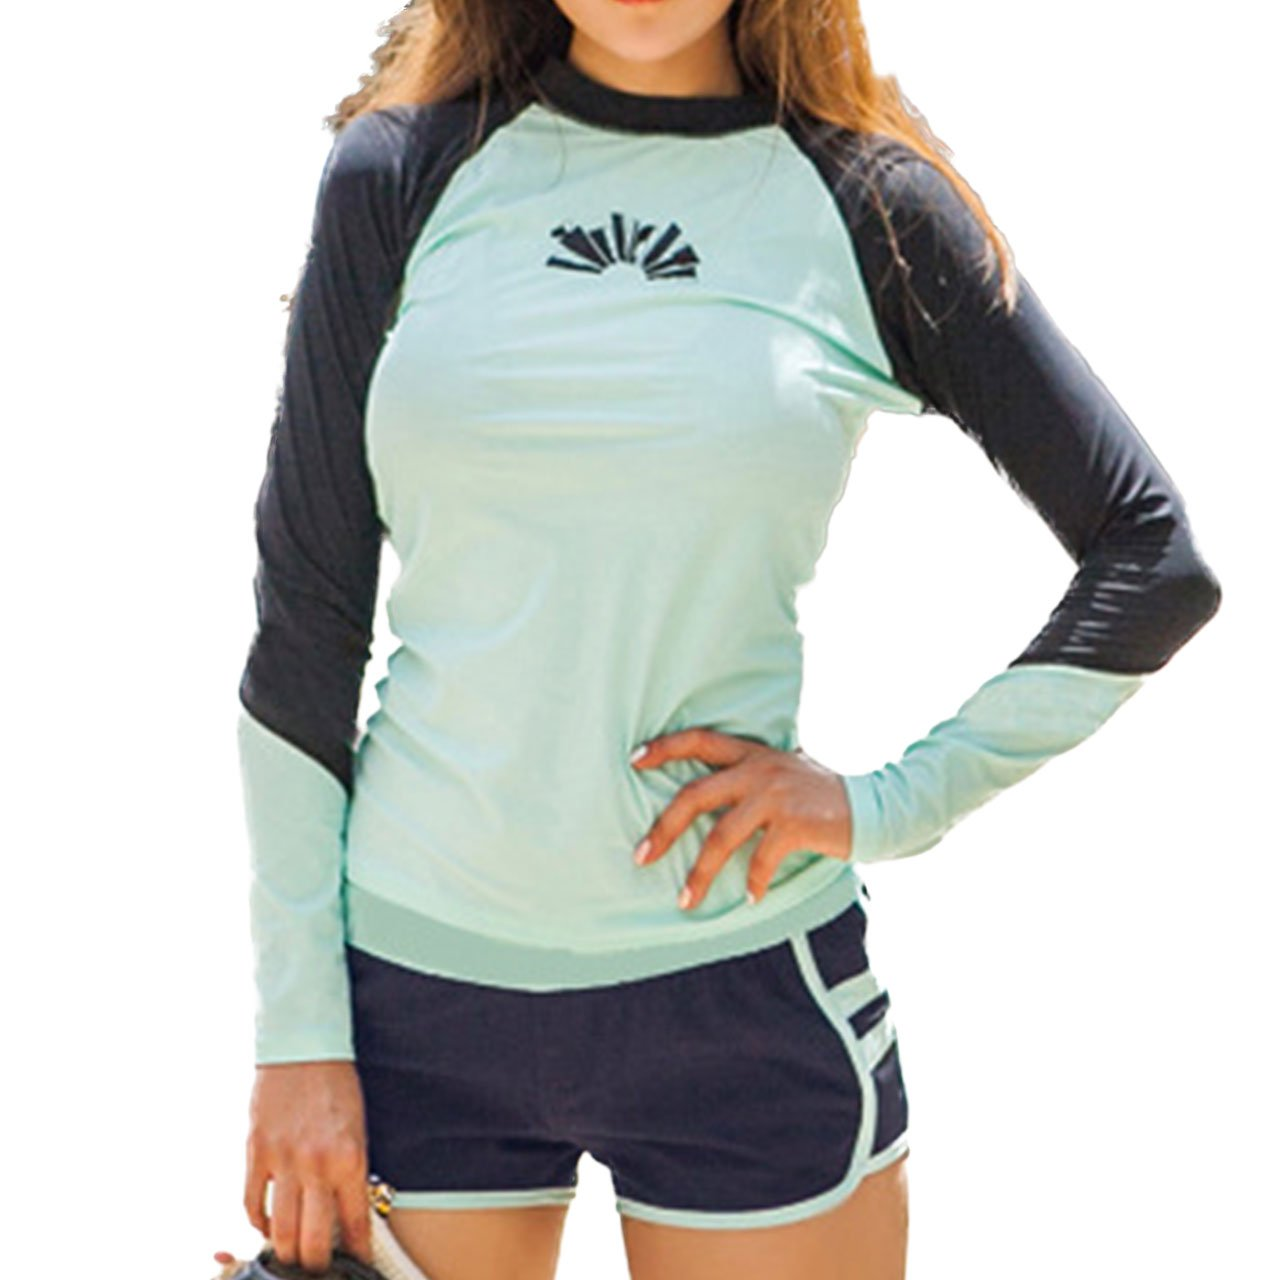 Women's Rash Guard Sets Long Sleeves Raglan Two Pieces Swimsuits Crew Neck Bra Pads Swimwear